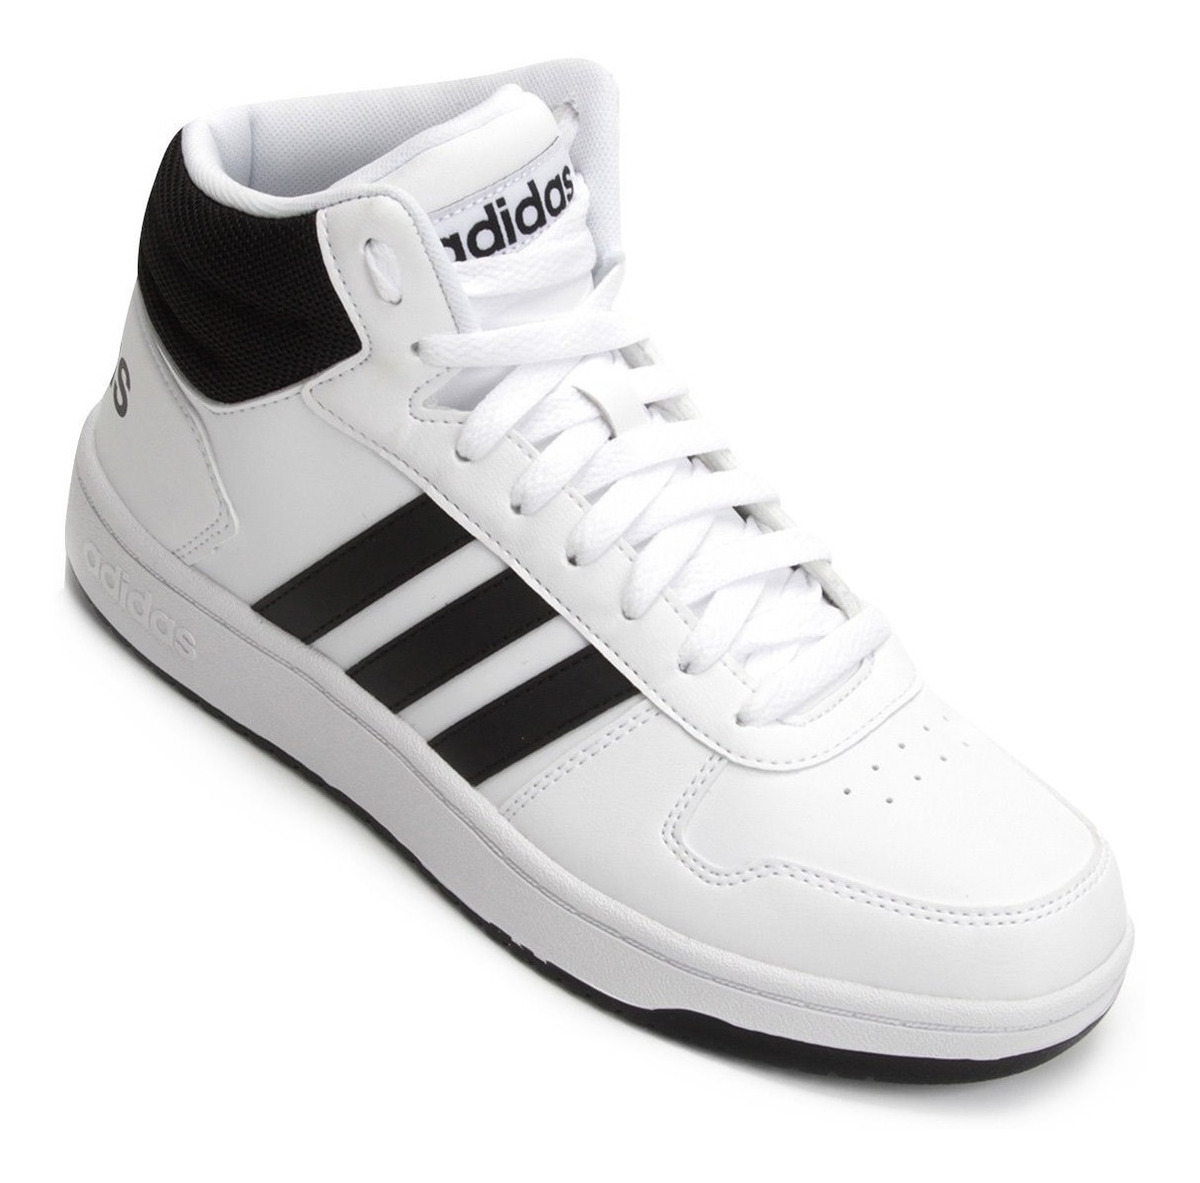 outlet for sale entire collection new specials Tenis Adidas Masculino Cano Alto {Cybertron Ological}